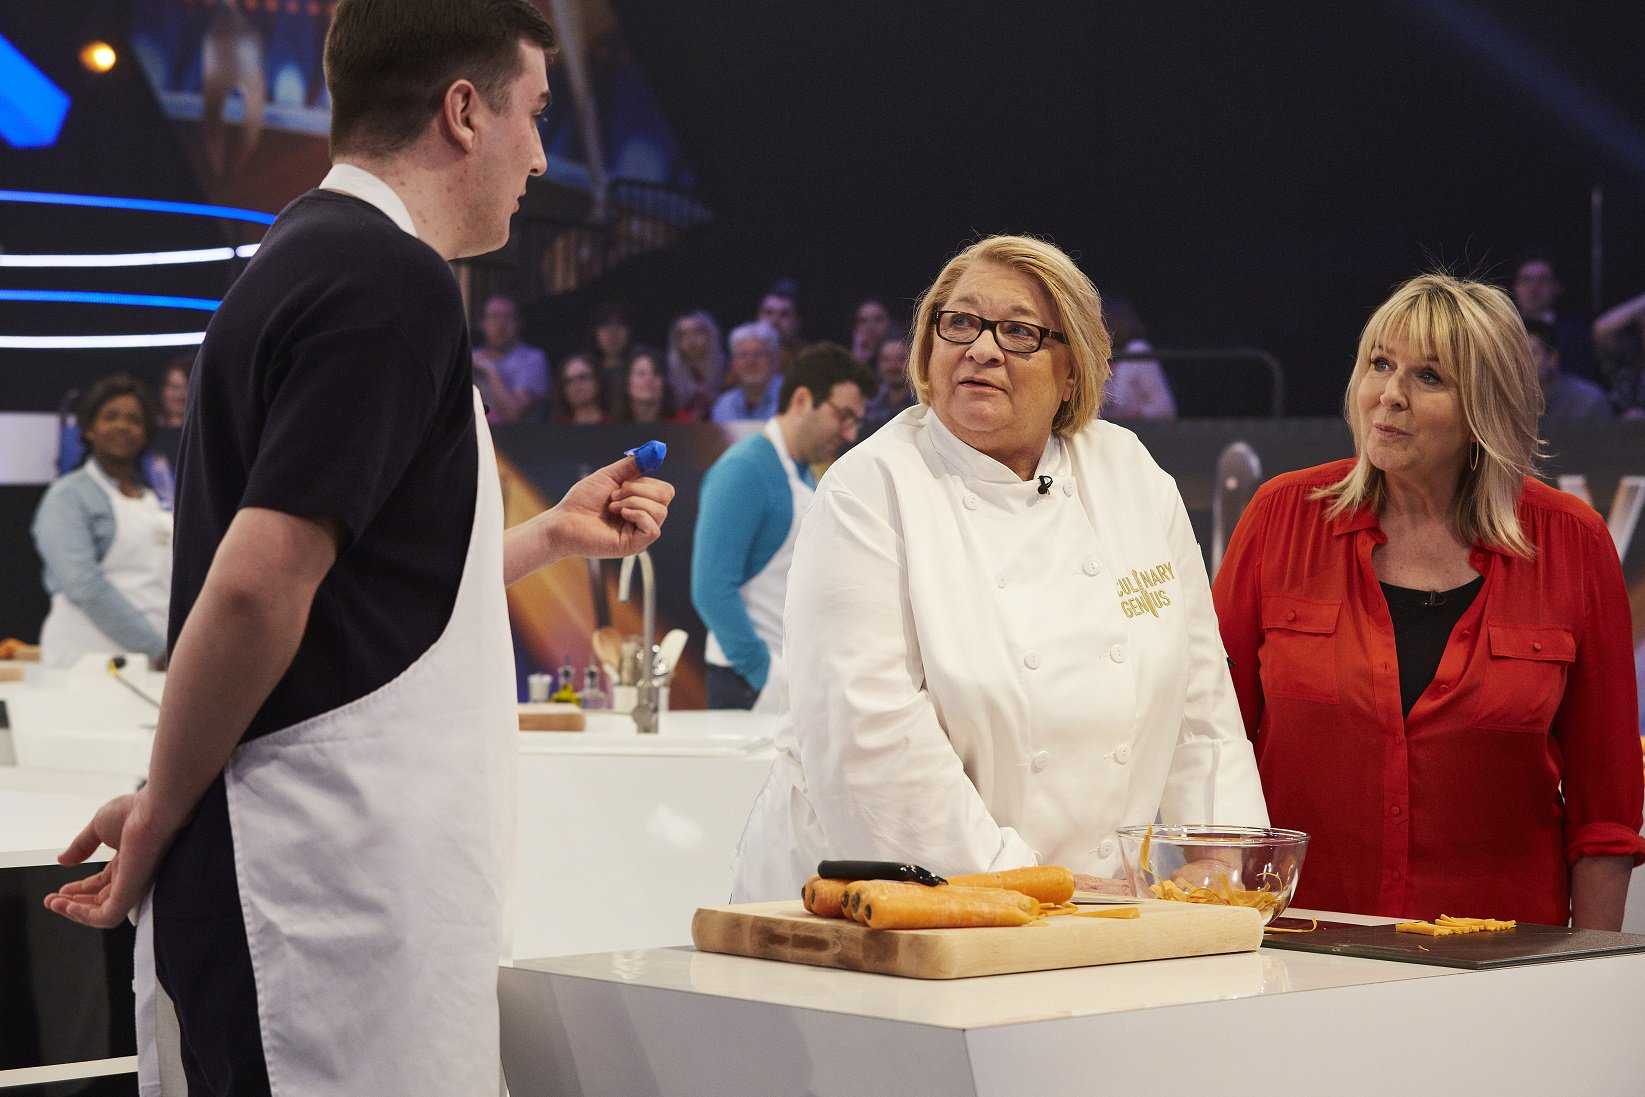 Week 2 of #CulinaryGenius with @RosemaryShrager is almost at its end - catch today's episode at 3 PM on @ITV ! https://t.co/f2TY8EnKUV